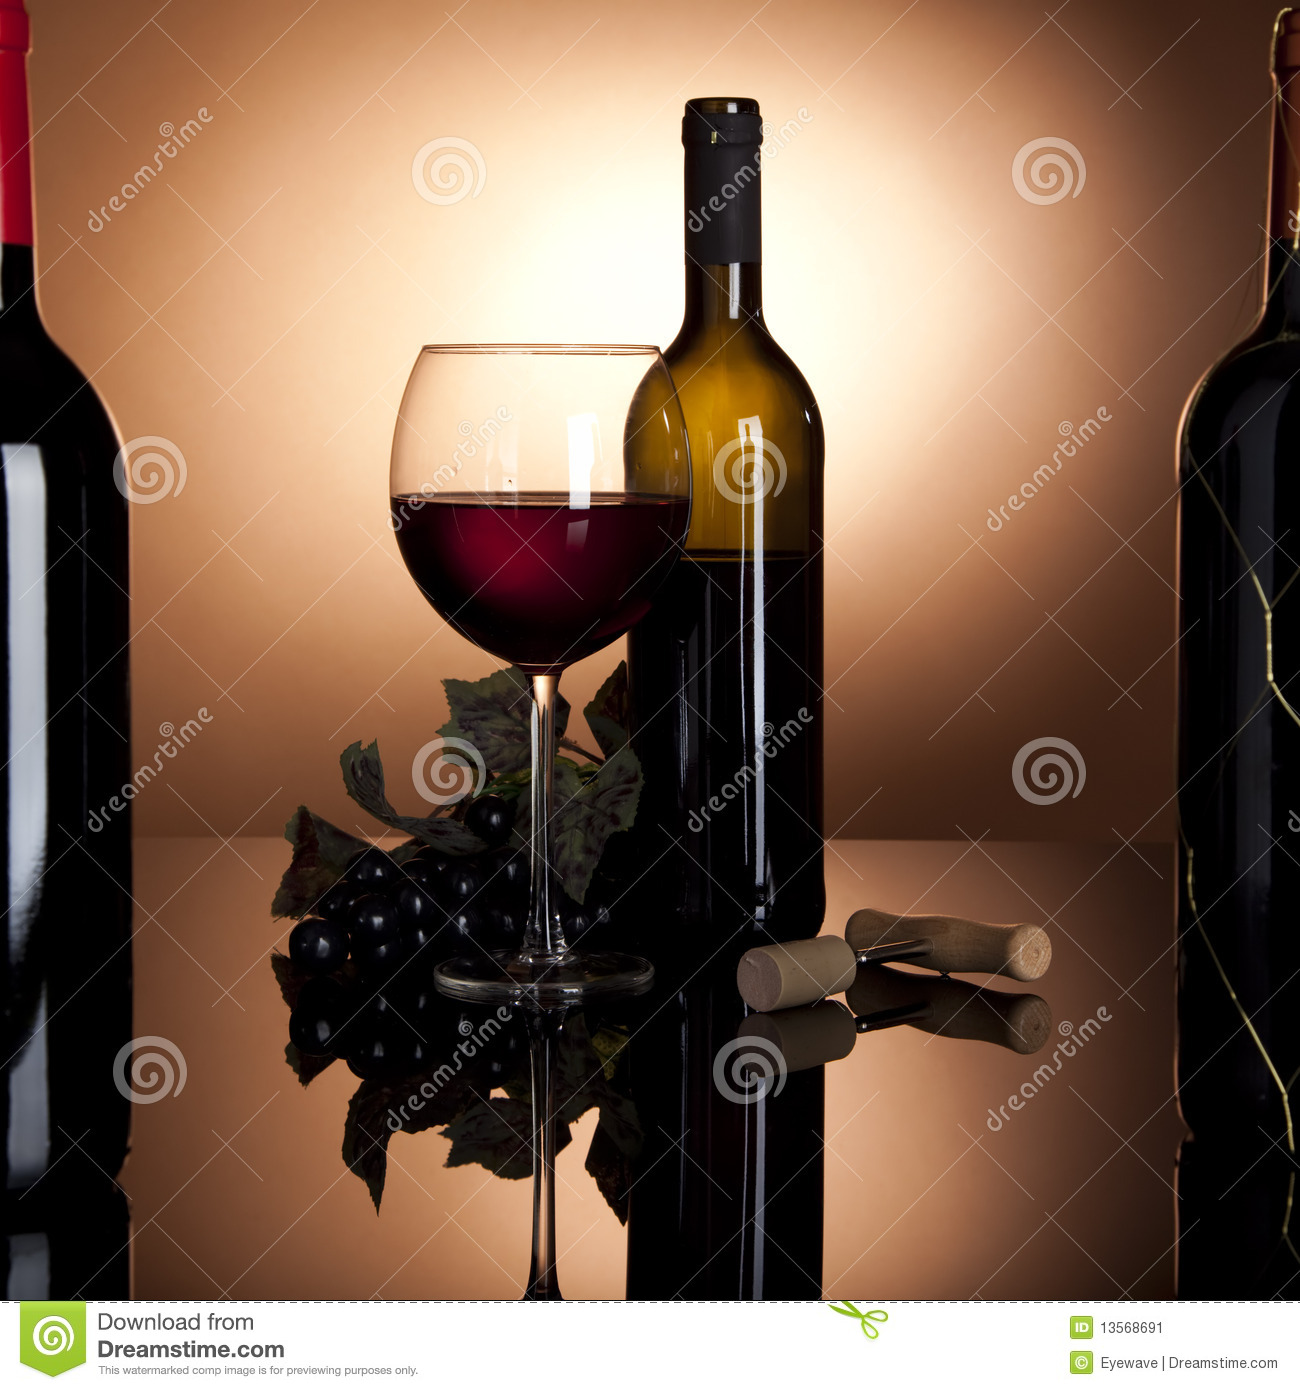 Red wine bottle, glass and grapes